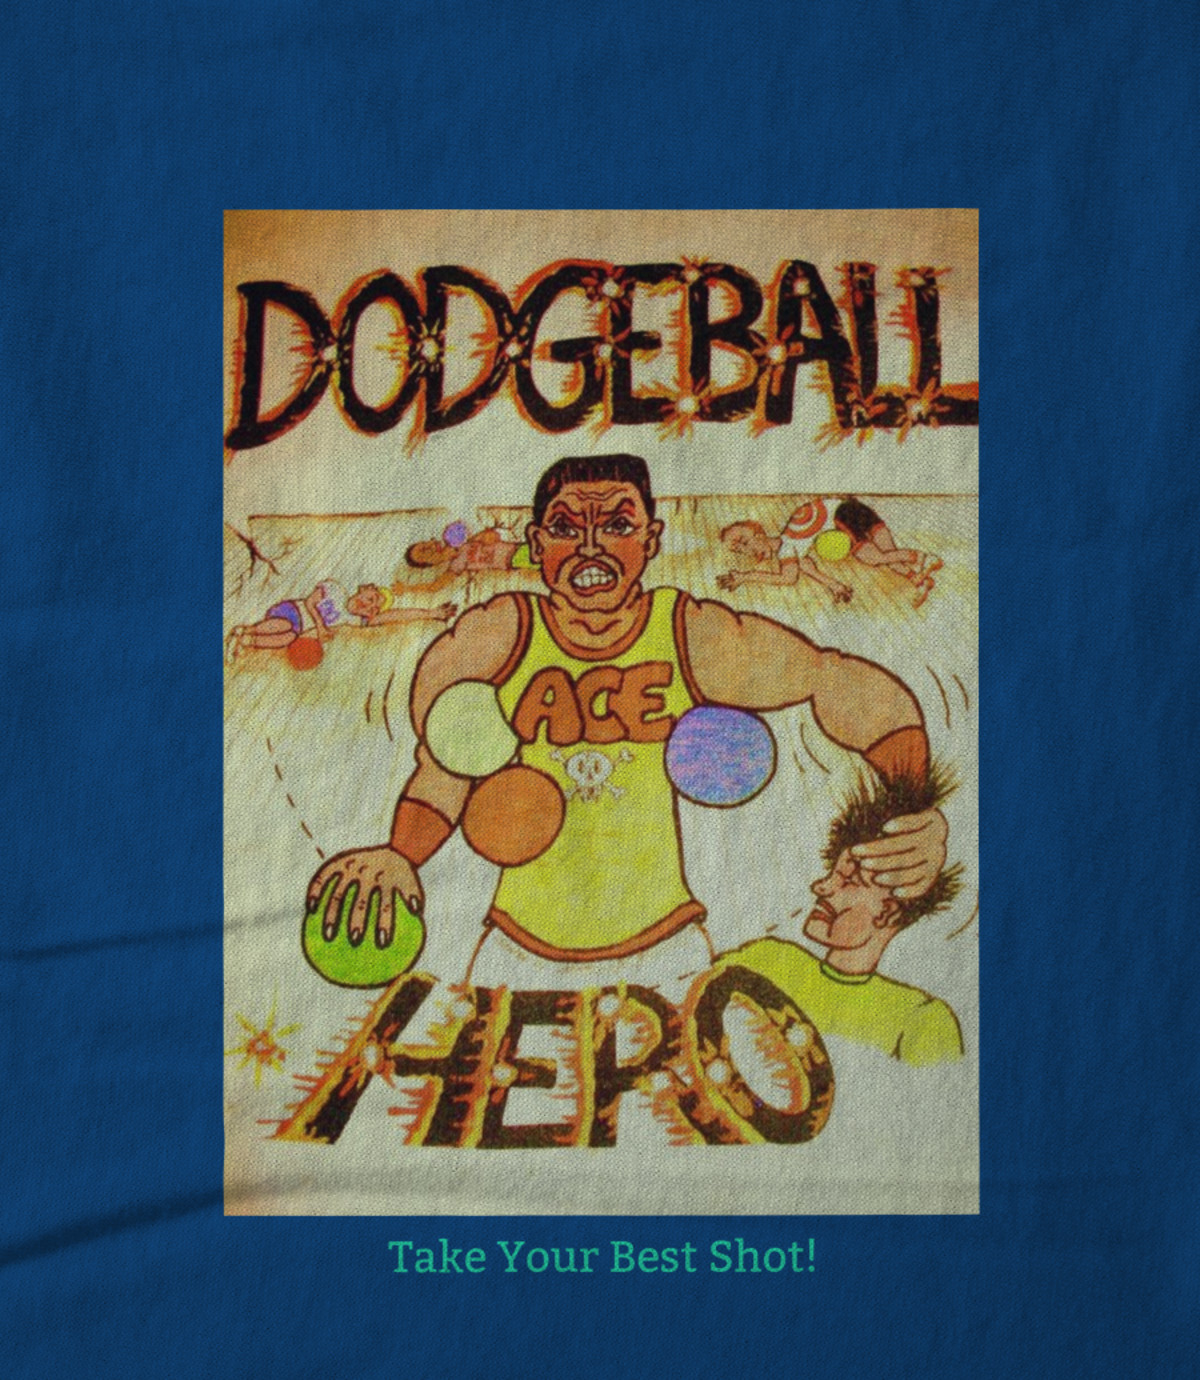 Matthew f  blowers iii dodge ball hero   1505918603